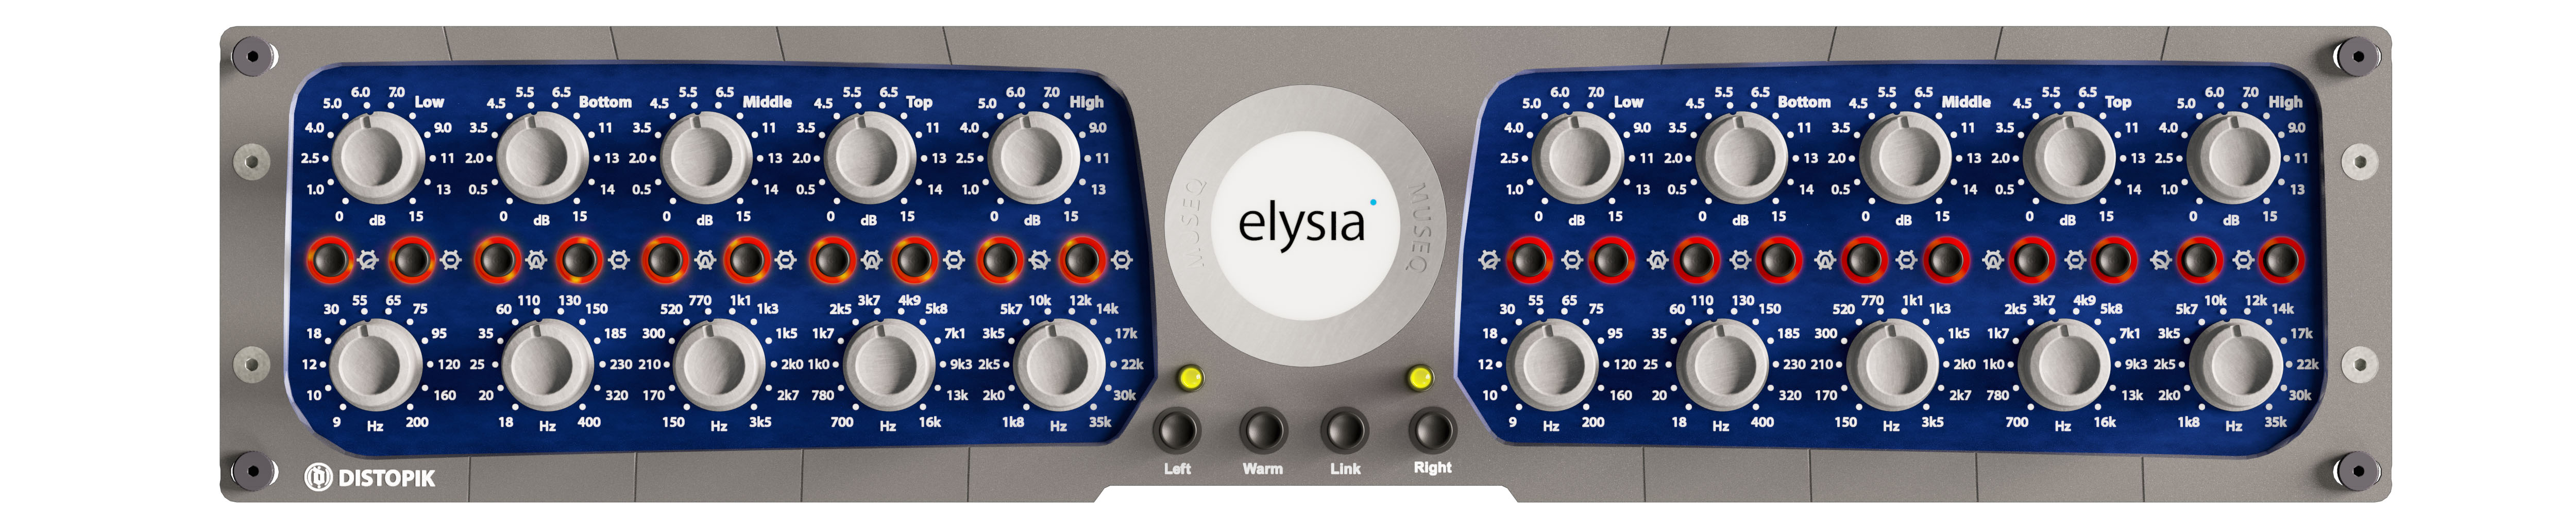 elysia-museq-released-on-mix-analog